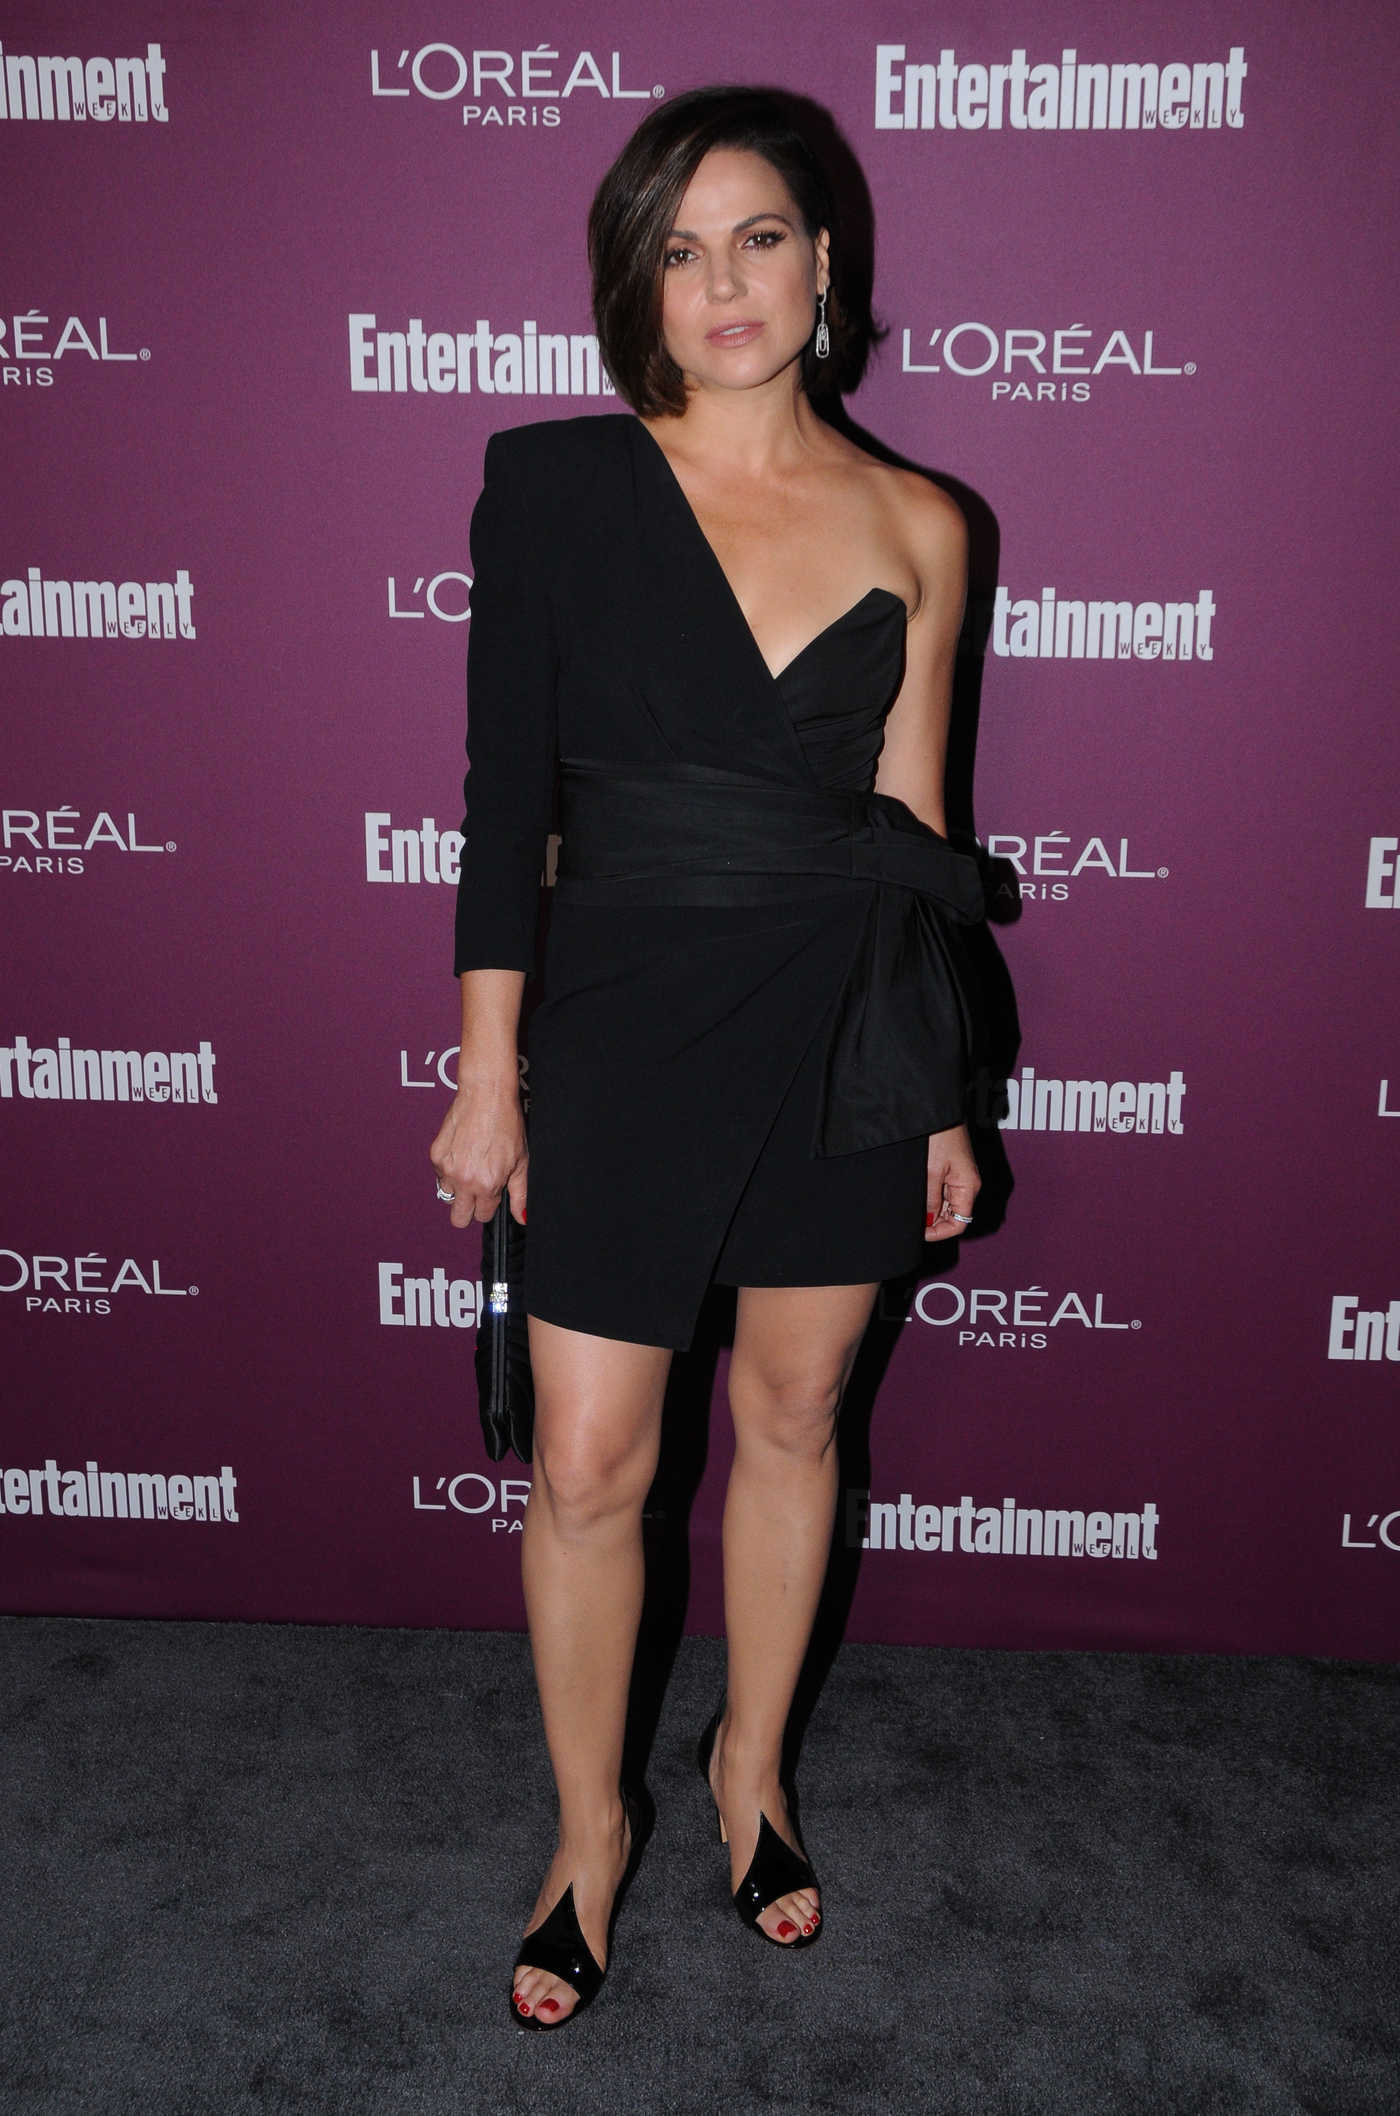 Lana Parrilla at the 2017 Entertainment Weekly Pre-Emmy Party in West Hollywood 09/15/2017